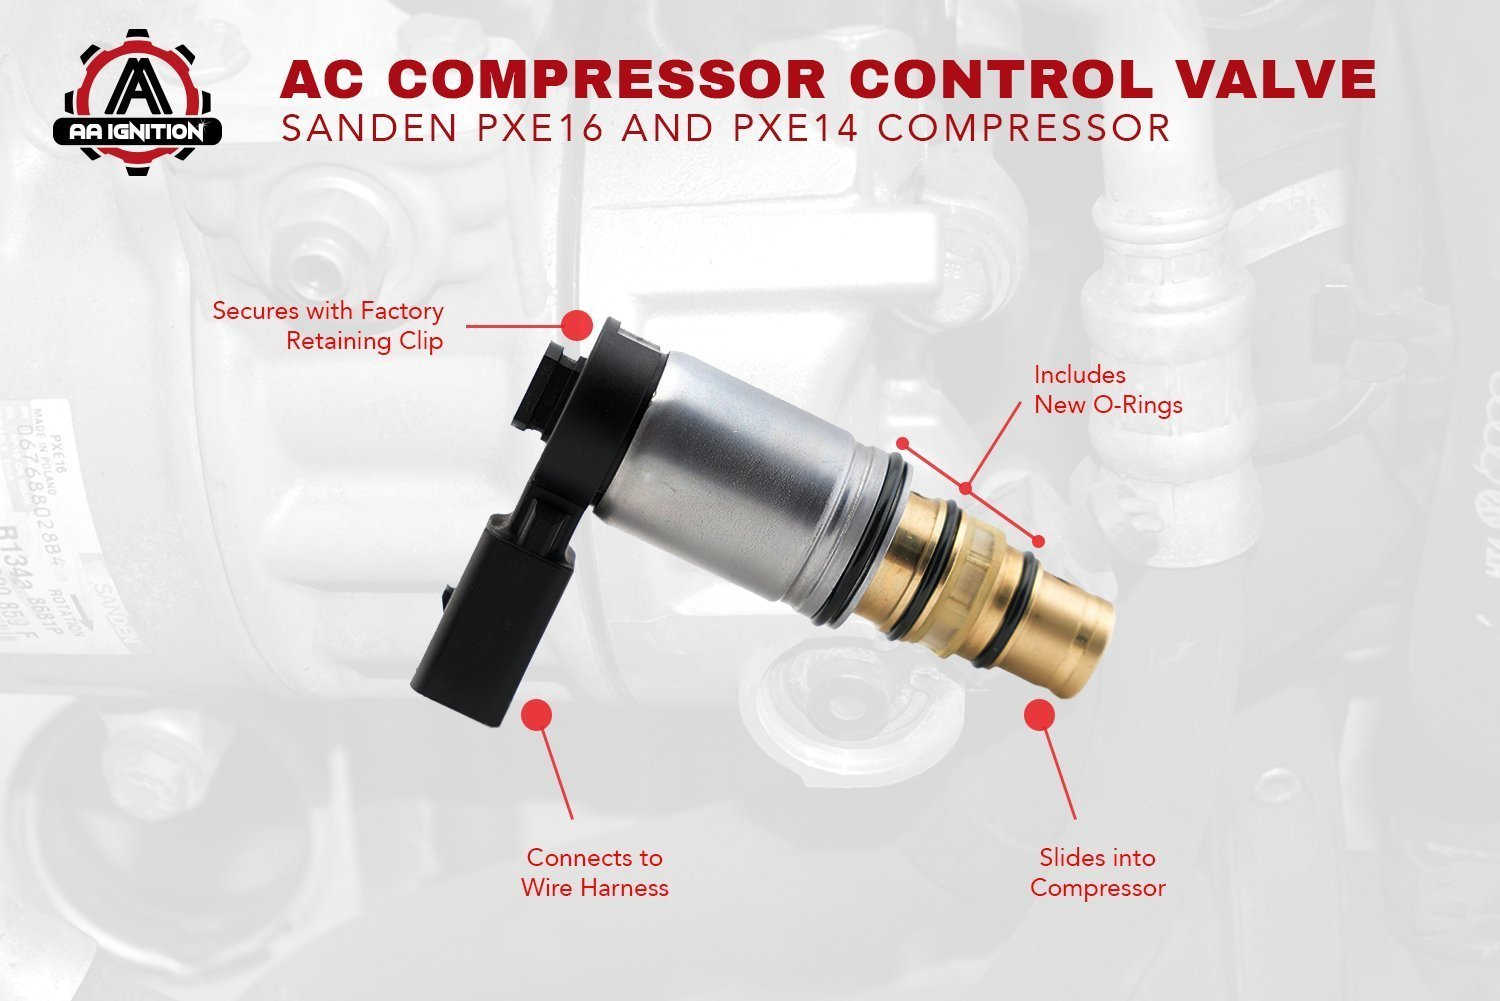 Ac Compressor Control Solenoid Valve Fits Volkswagen 1997 Rav4 A C Wiring Diagram Jetta Sanden Pxe16 Pxe14 1k0820803e Vw Gti Golf Passat Tiguan Tdi And More